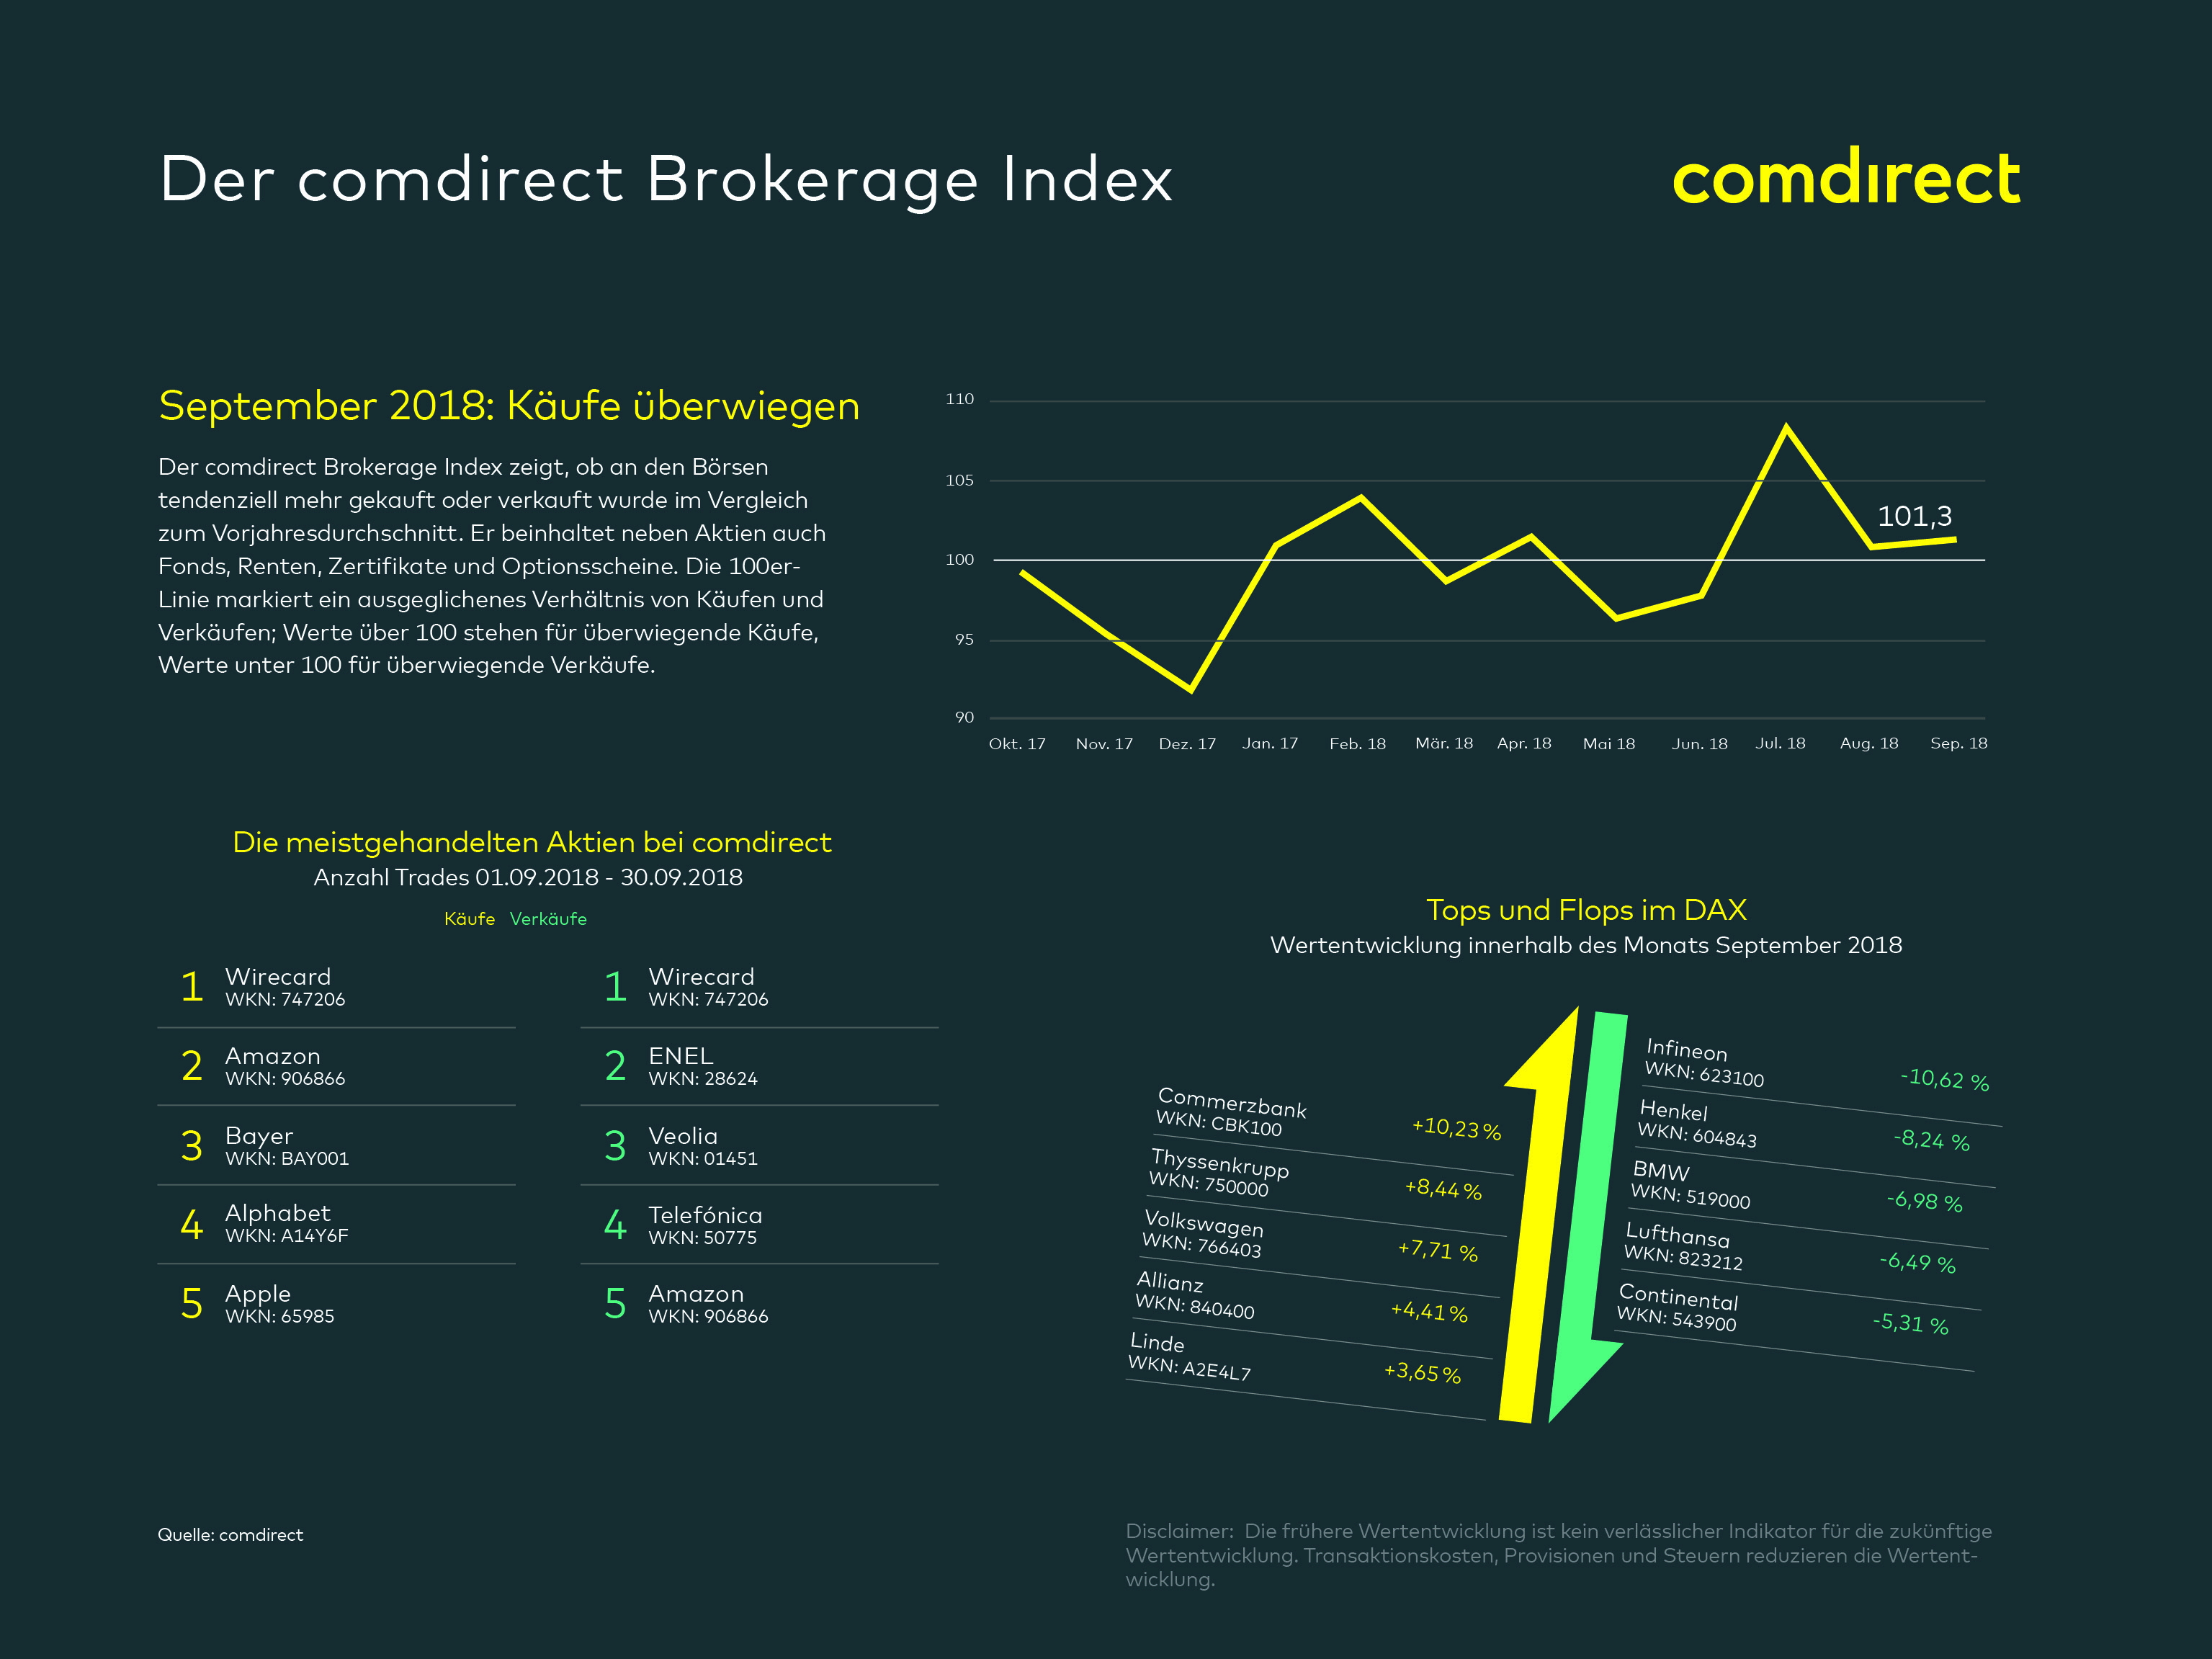 Der comdirect Brokerage Index für September 2018 liegt bei 101,3 Punkten